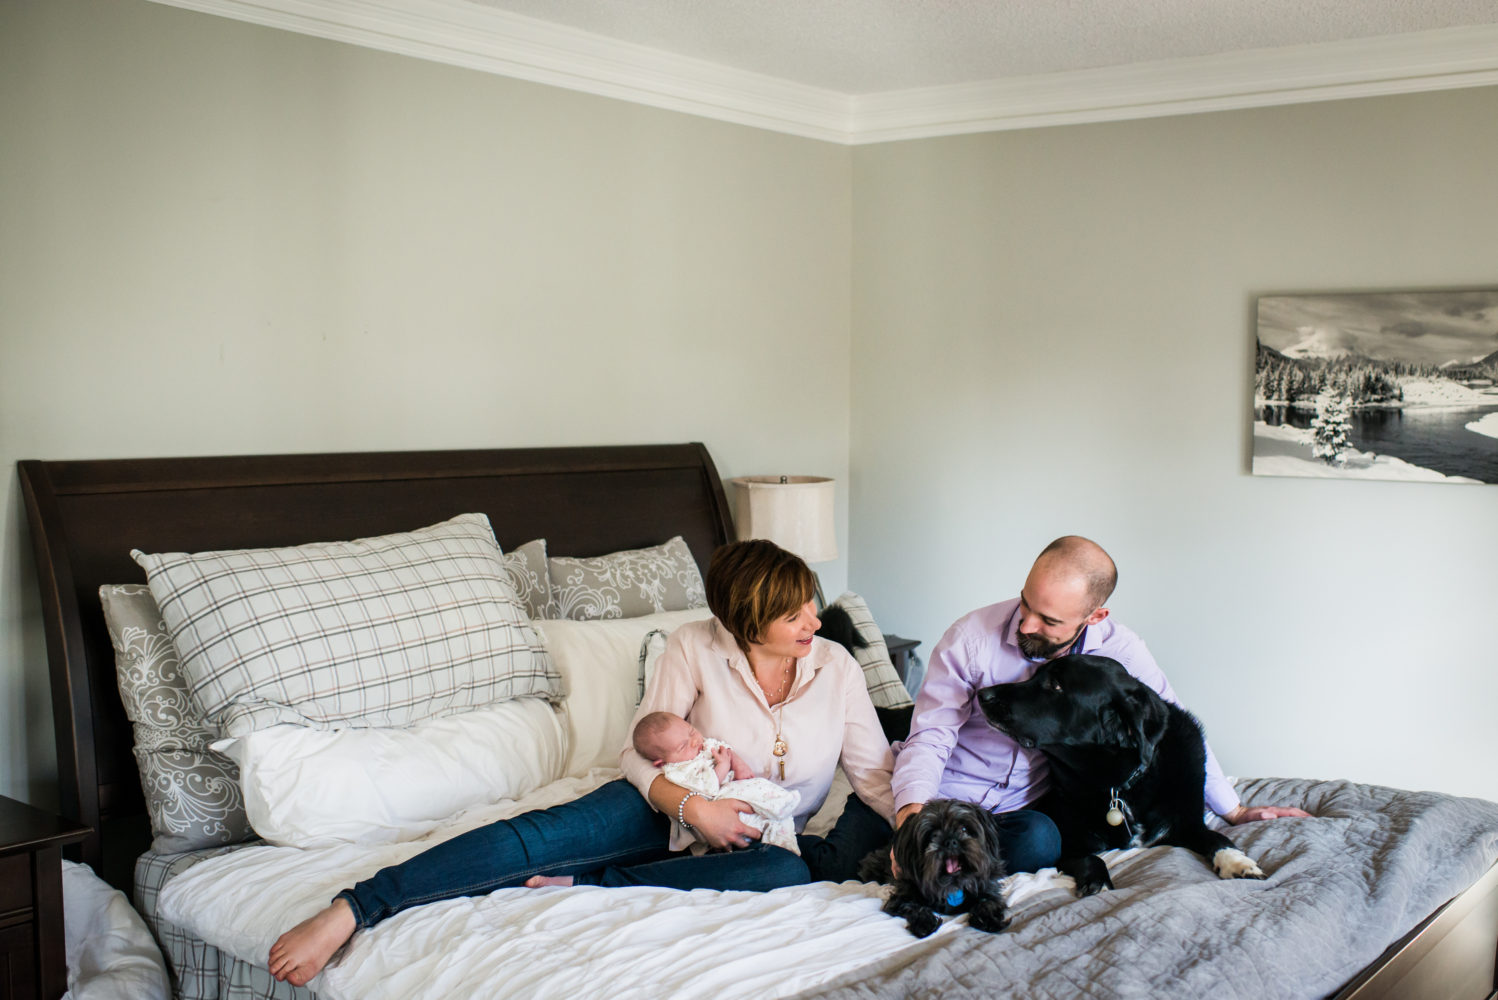 Taking family photos with the original kids, their dogs and watching how these puppies adored their new baby sister | 3Haus Photographics